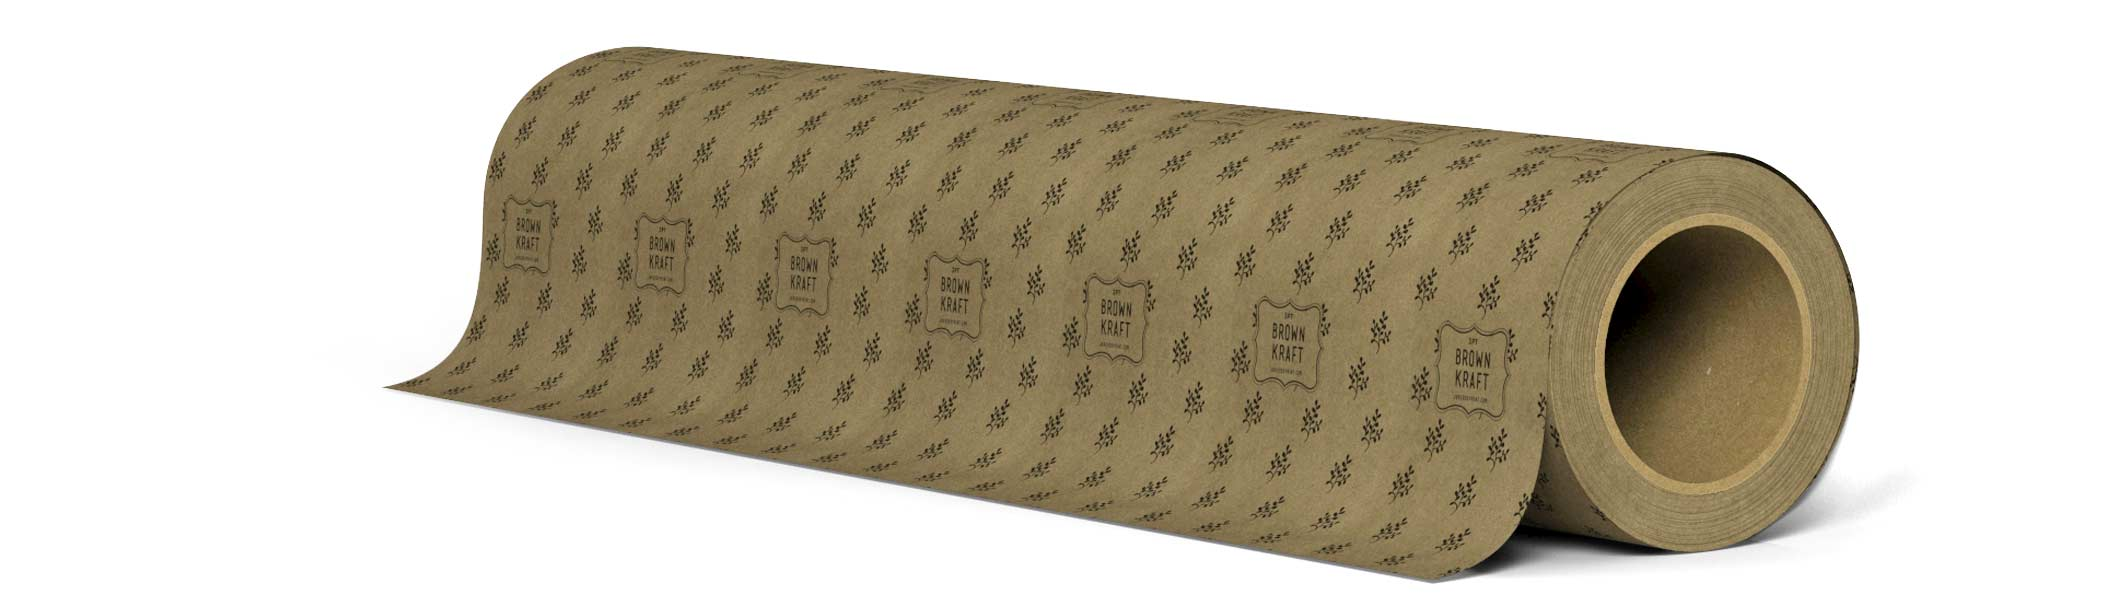 3pt Brown Kraft wrapping paper roll